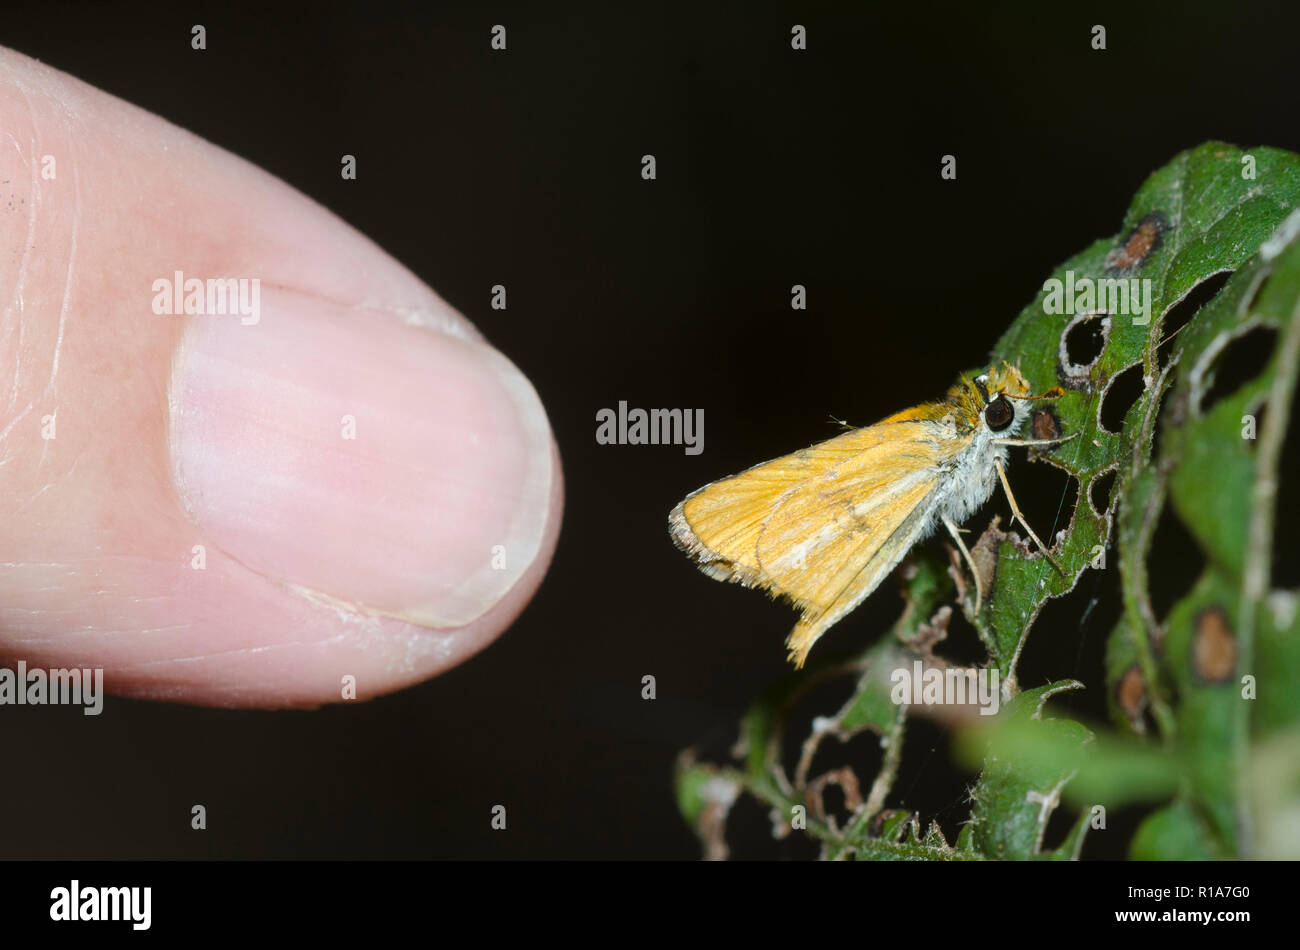 Southern Skipperling, Copaeodes minima, next to pinky finger to illustrate size - Stock Image